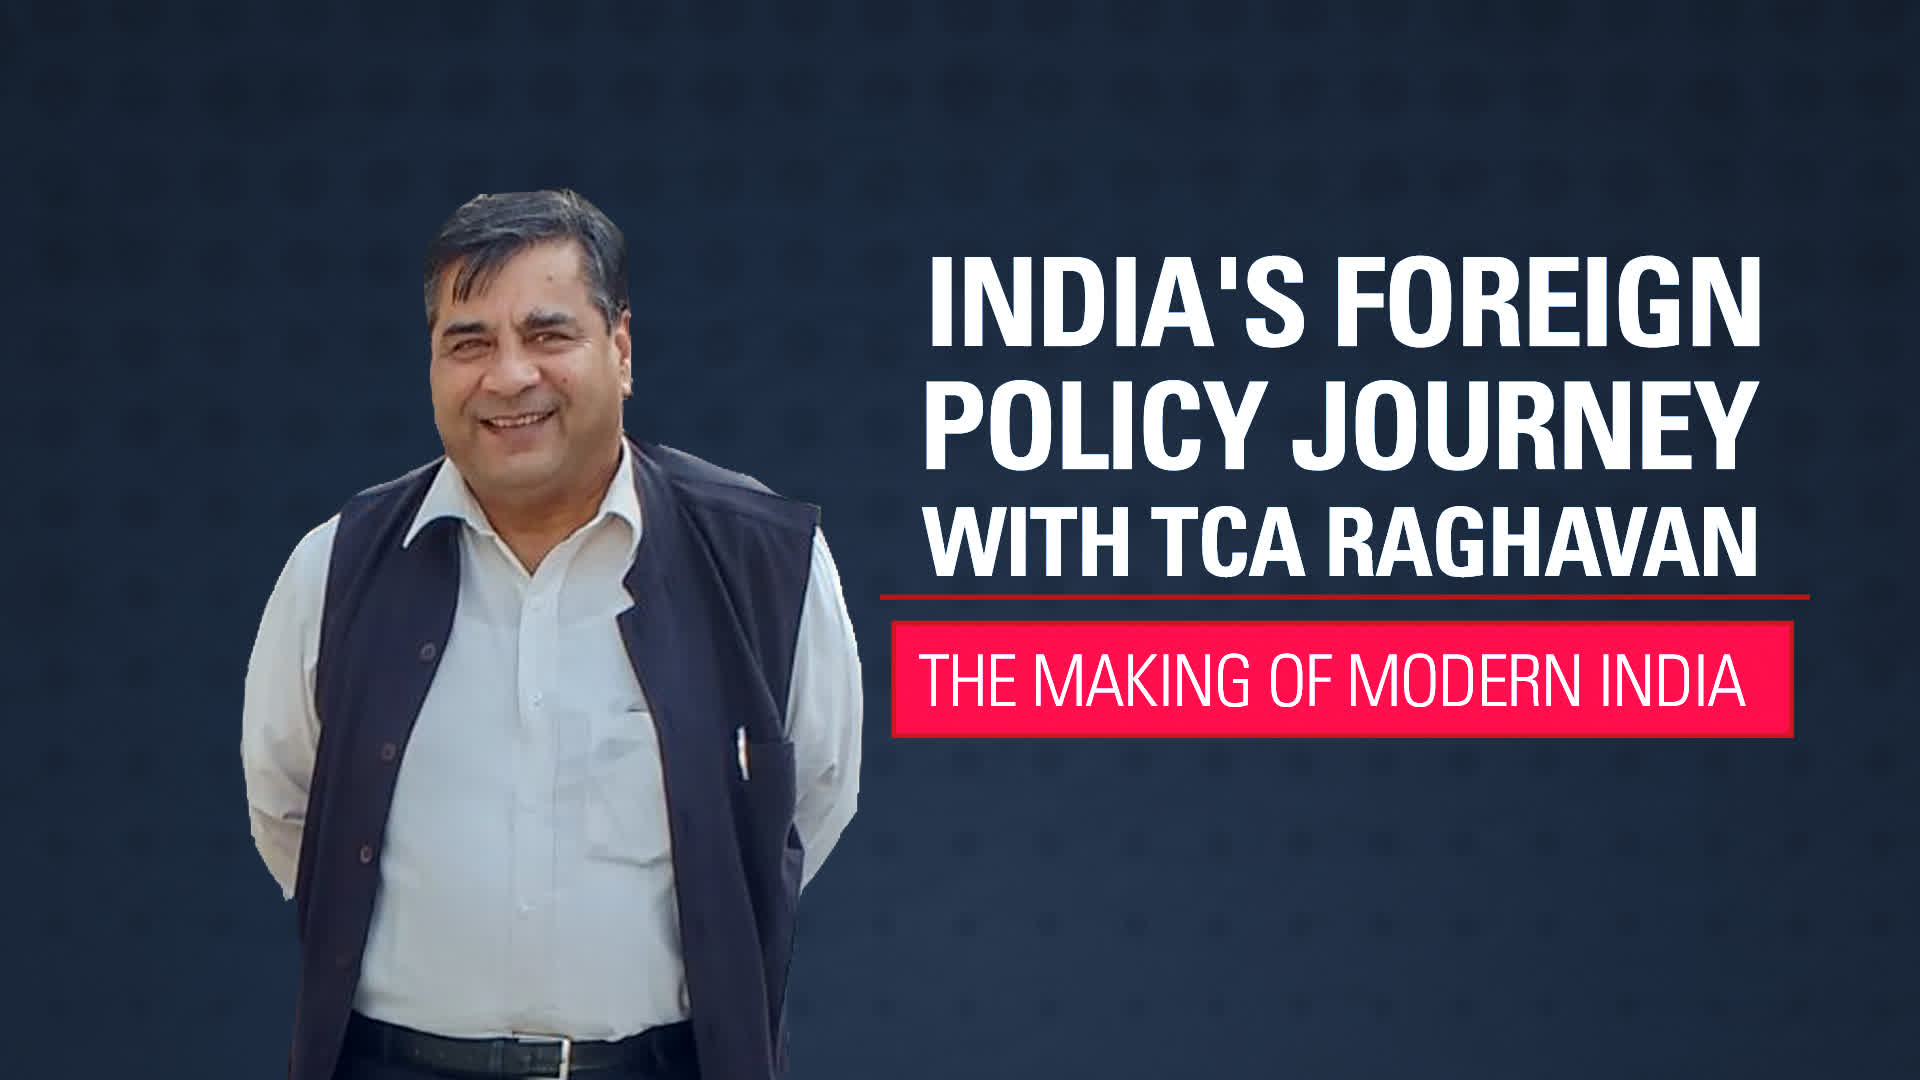 India's Foreign Policy Journey With TCA Raghavan